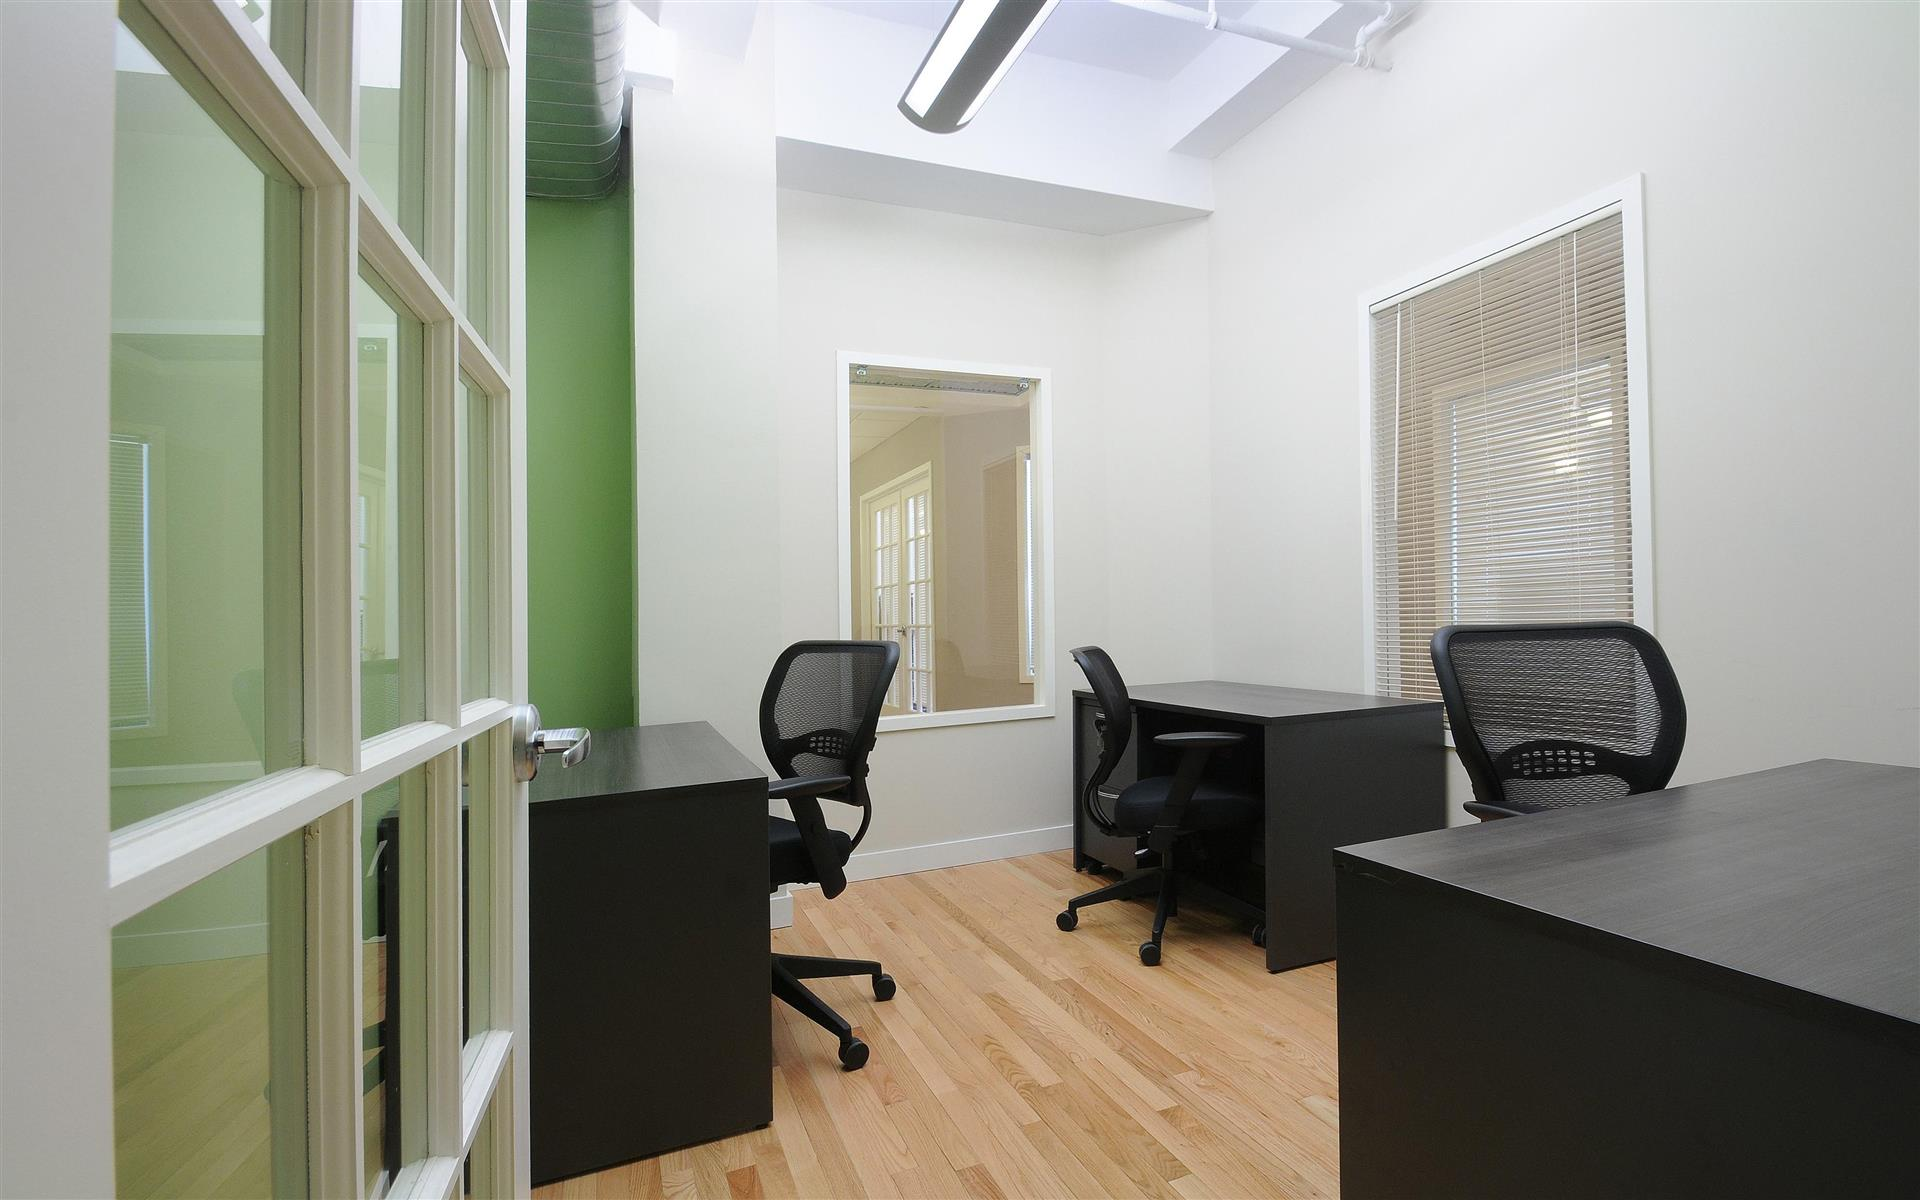 Select Office Suites - 1115 Broadway Flatiron NYC - Private Office for 2-3 people